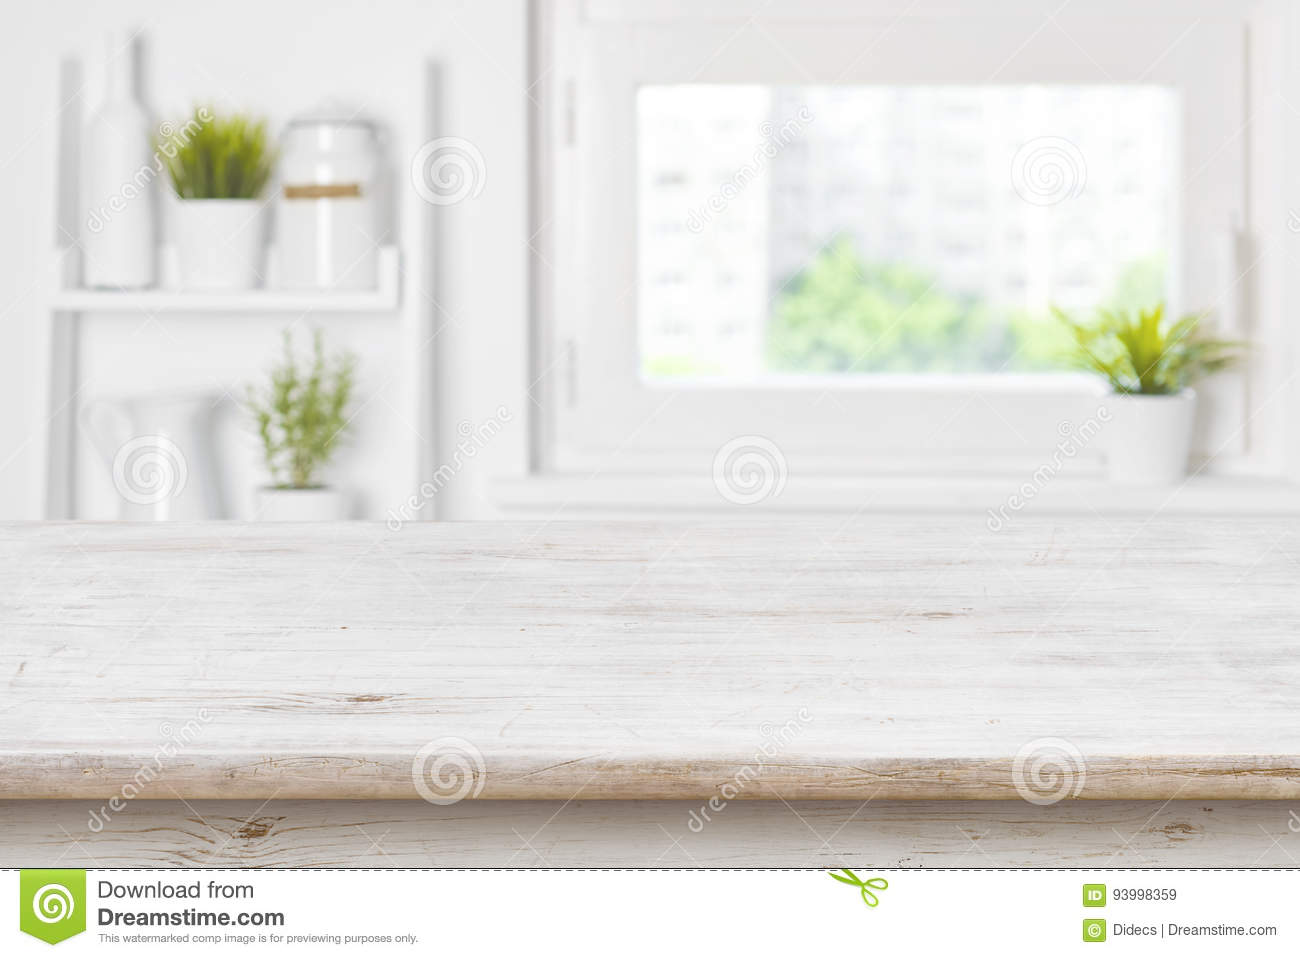 Empty textured wooden table and kitchen window shelves blurred background